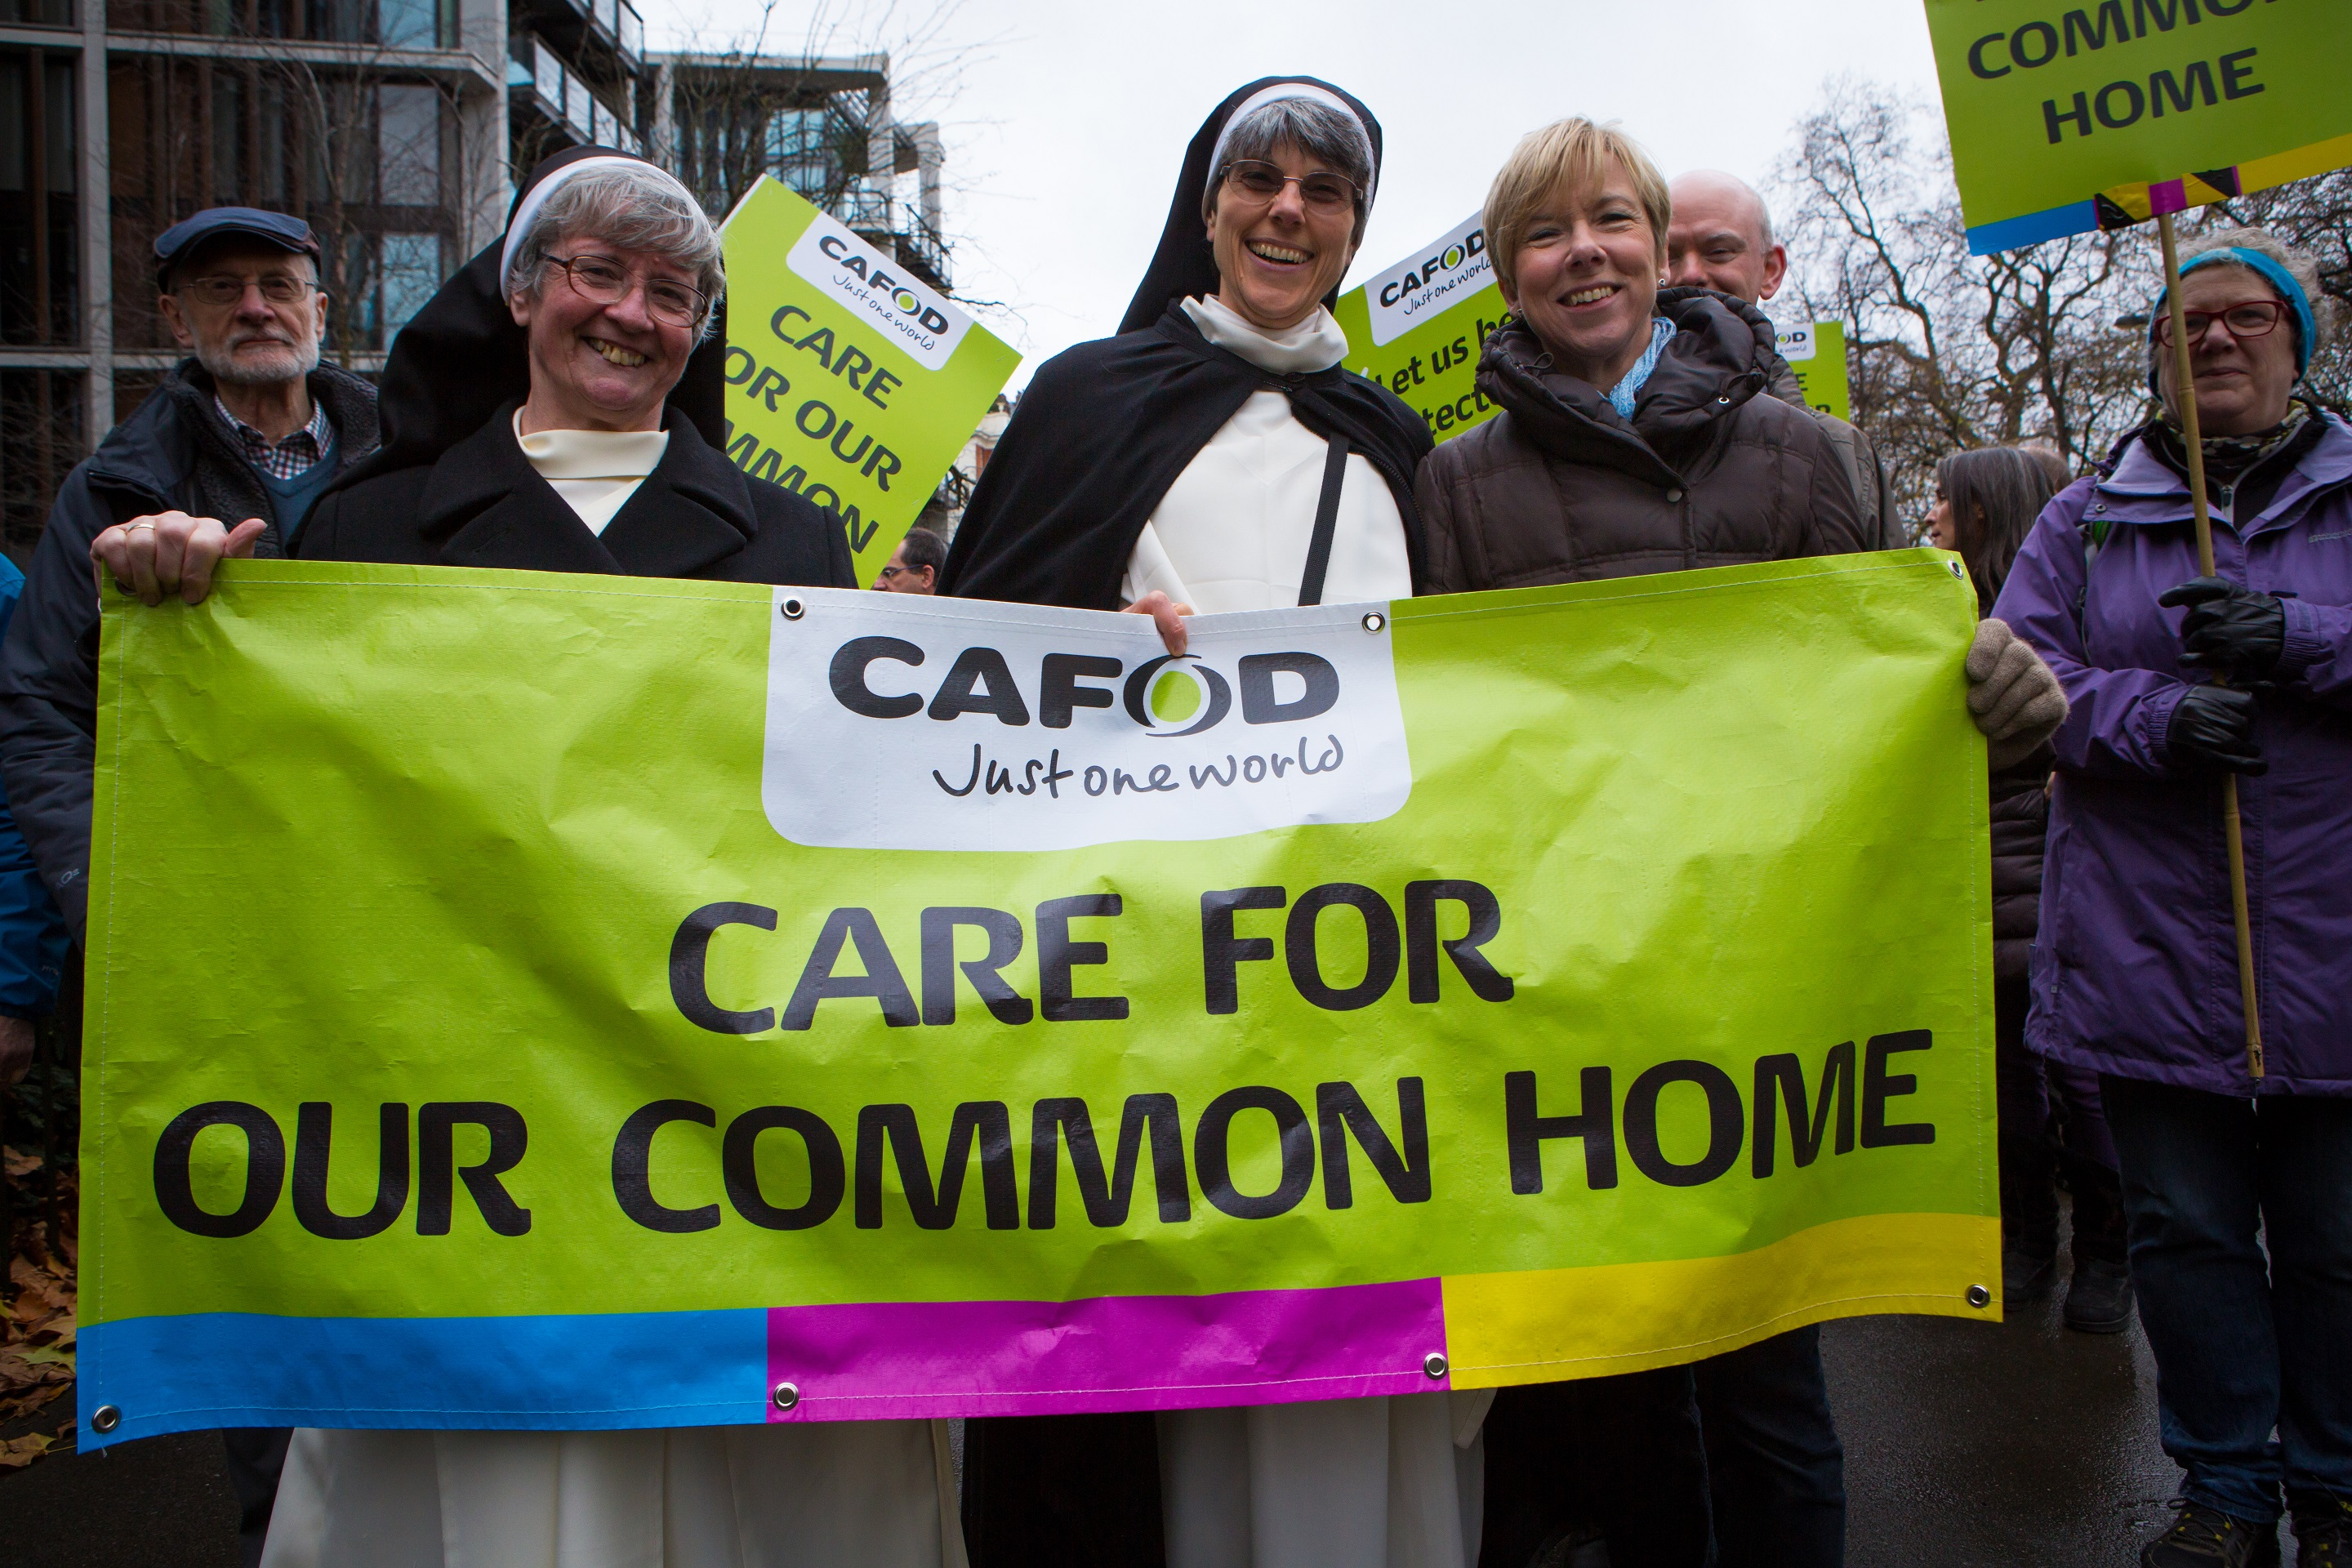 sister-karen-joined-tens-of-thousands-of-people-marching-through-london-for-action-on-climate-change-louise-norton-cafod